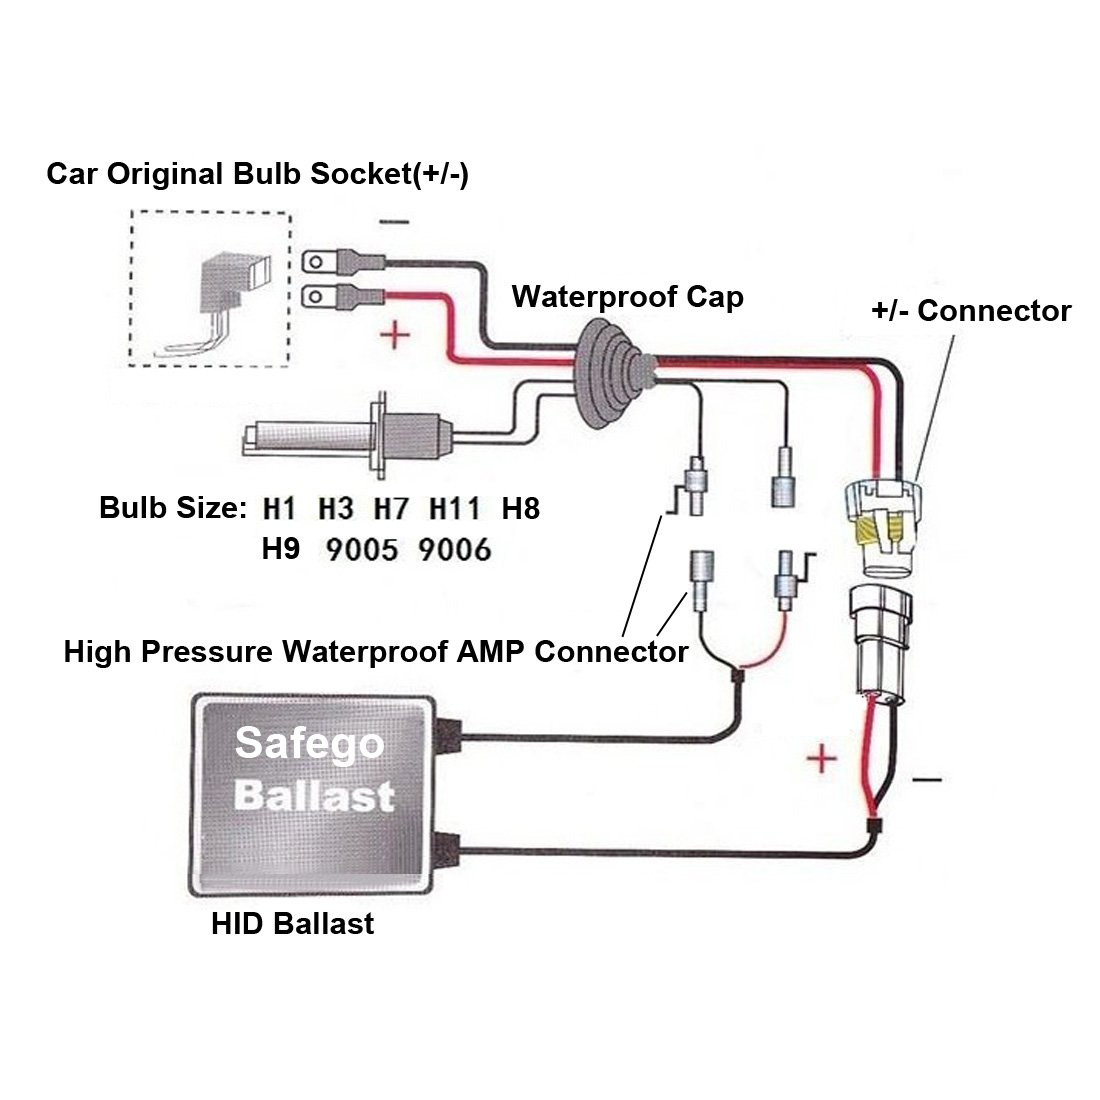 Hid Headlight Wiring Diagram Free Download Schematic Just Another H4 Relay H13 Plug Libraries Rh W10 Mo Stein De Chevy Basic